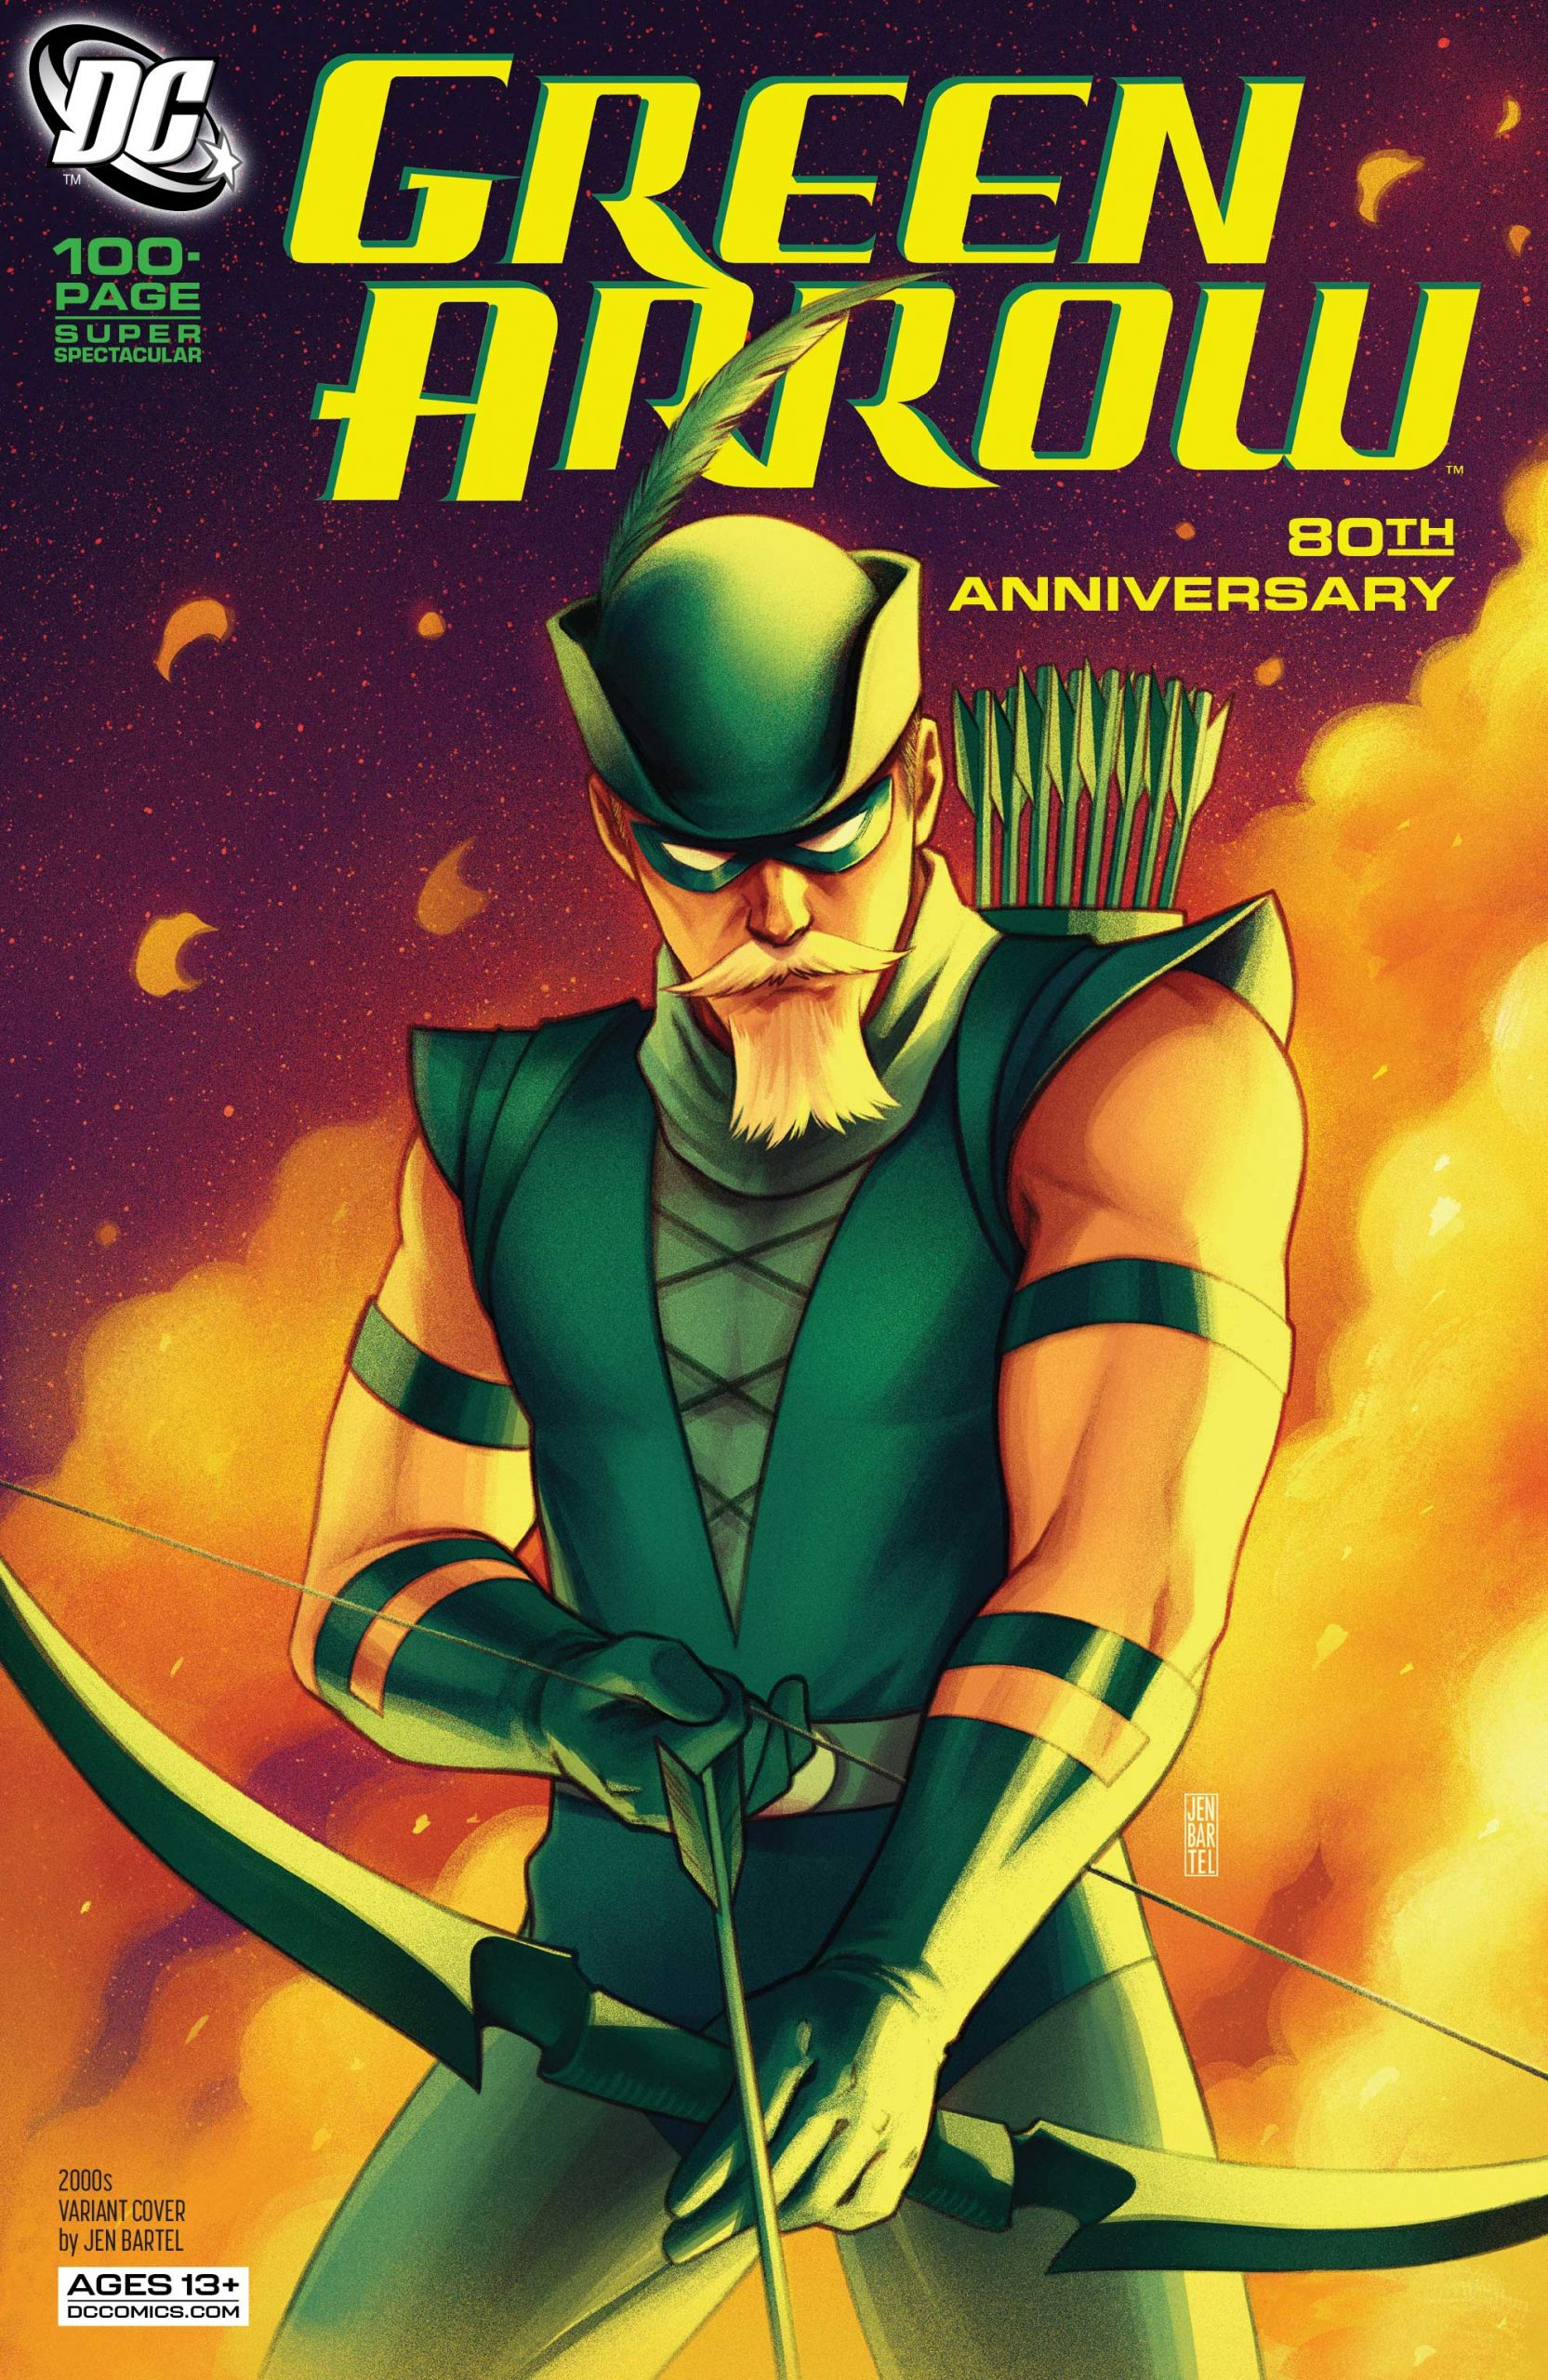 Green-Arrow-80th-Anniversary-100-Page-Super-Spectacular-1-8-scaled-1 Green-Arrow-80th-Anniversary-100-Page-Super-Spectacular-1-8-scaled-1